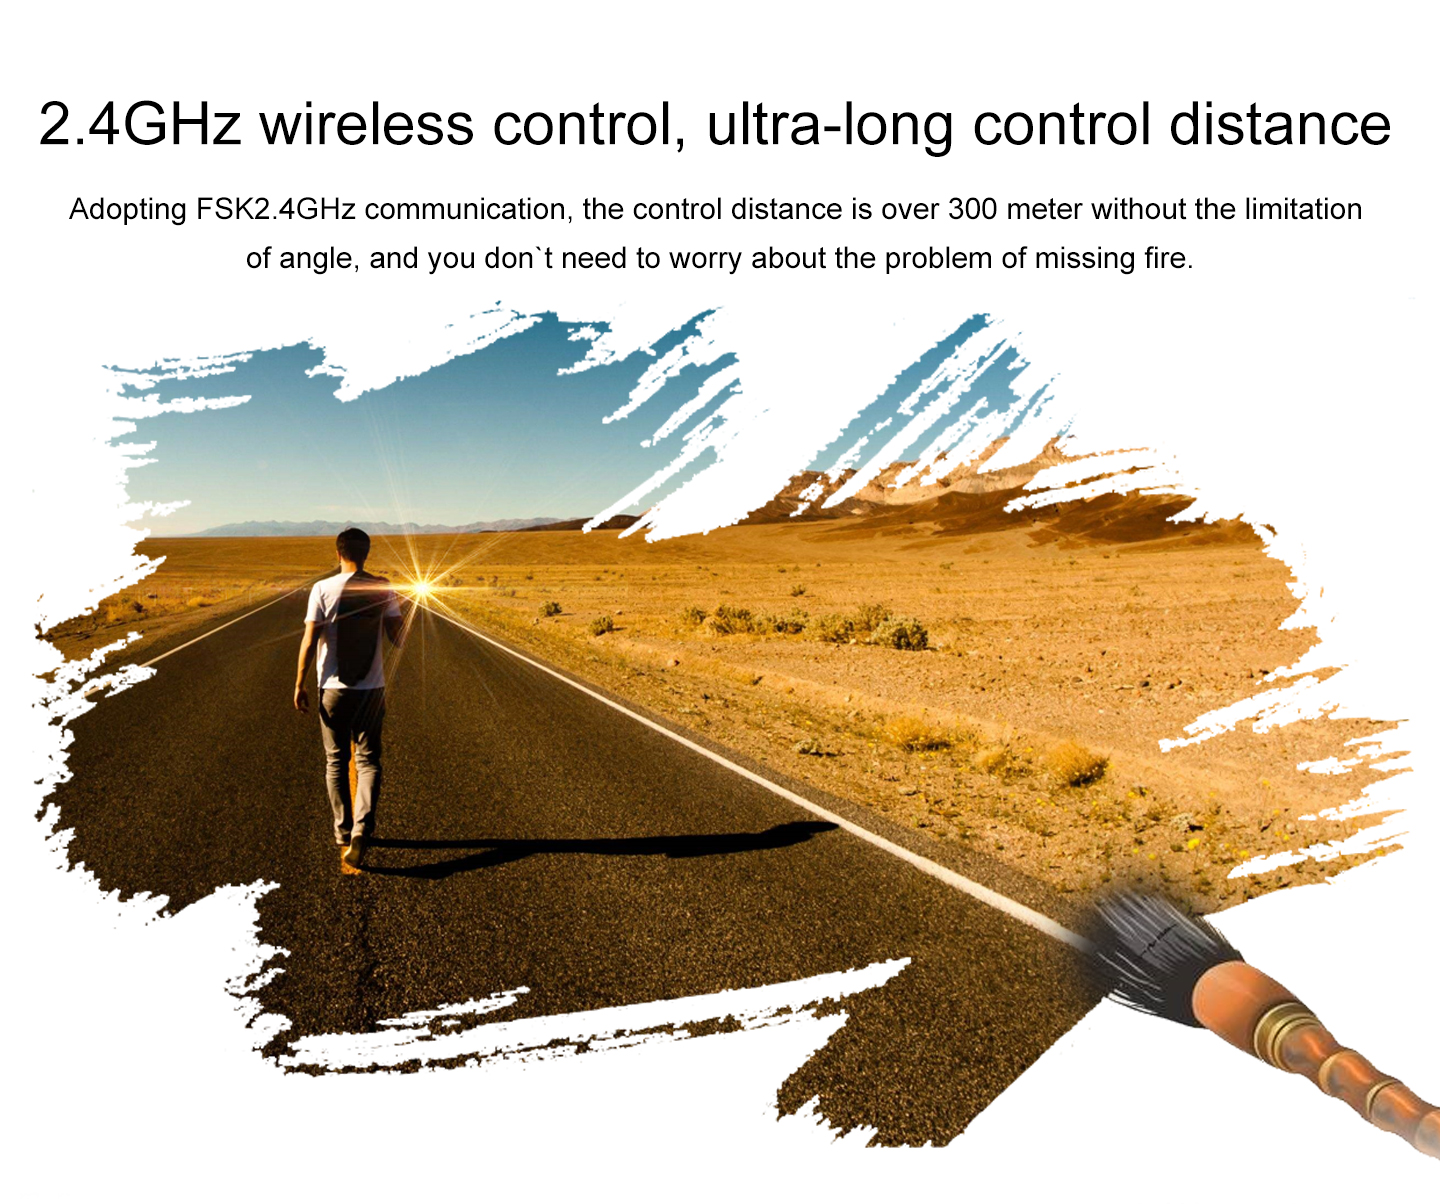 2.4GHz wireless control, ultra-long control distance